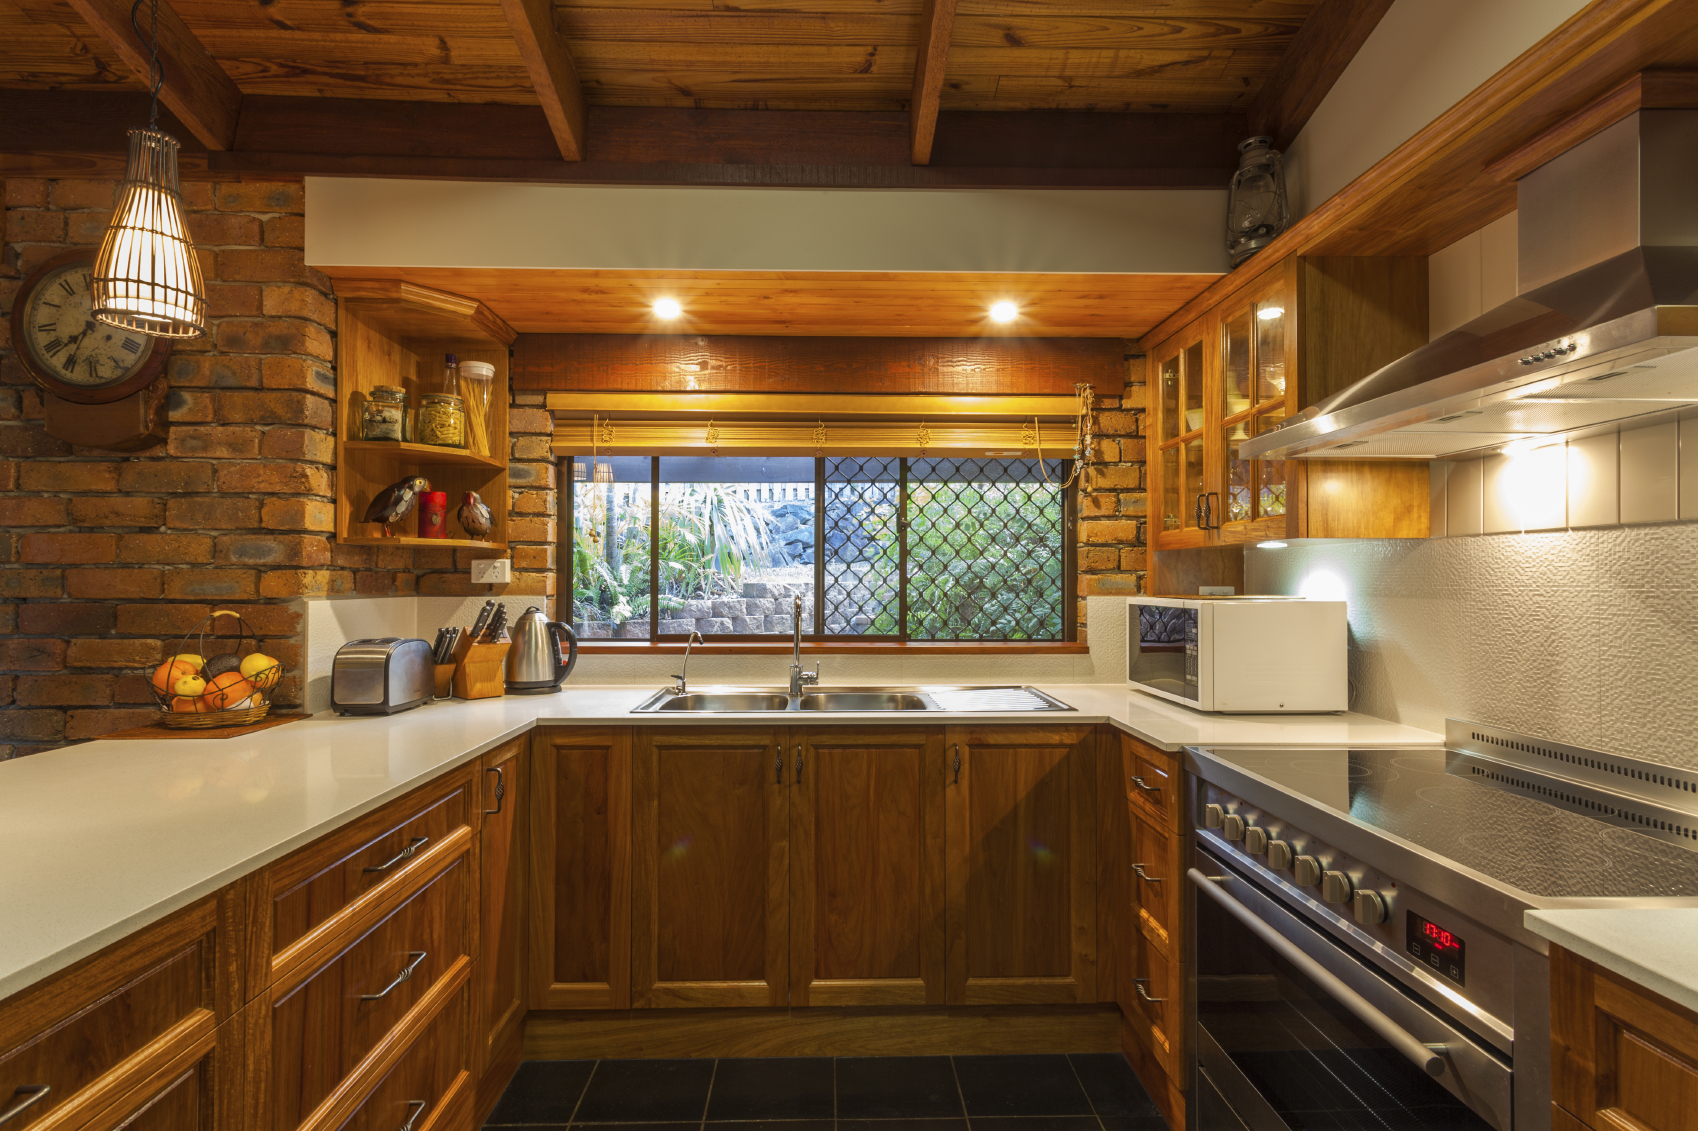 10 Tips For Remodeling The Best Small Galley Kitchen